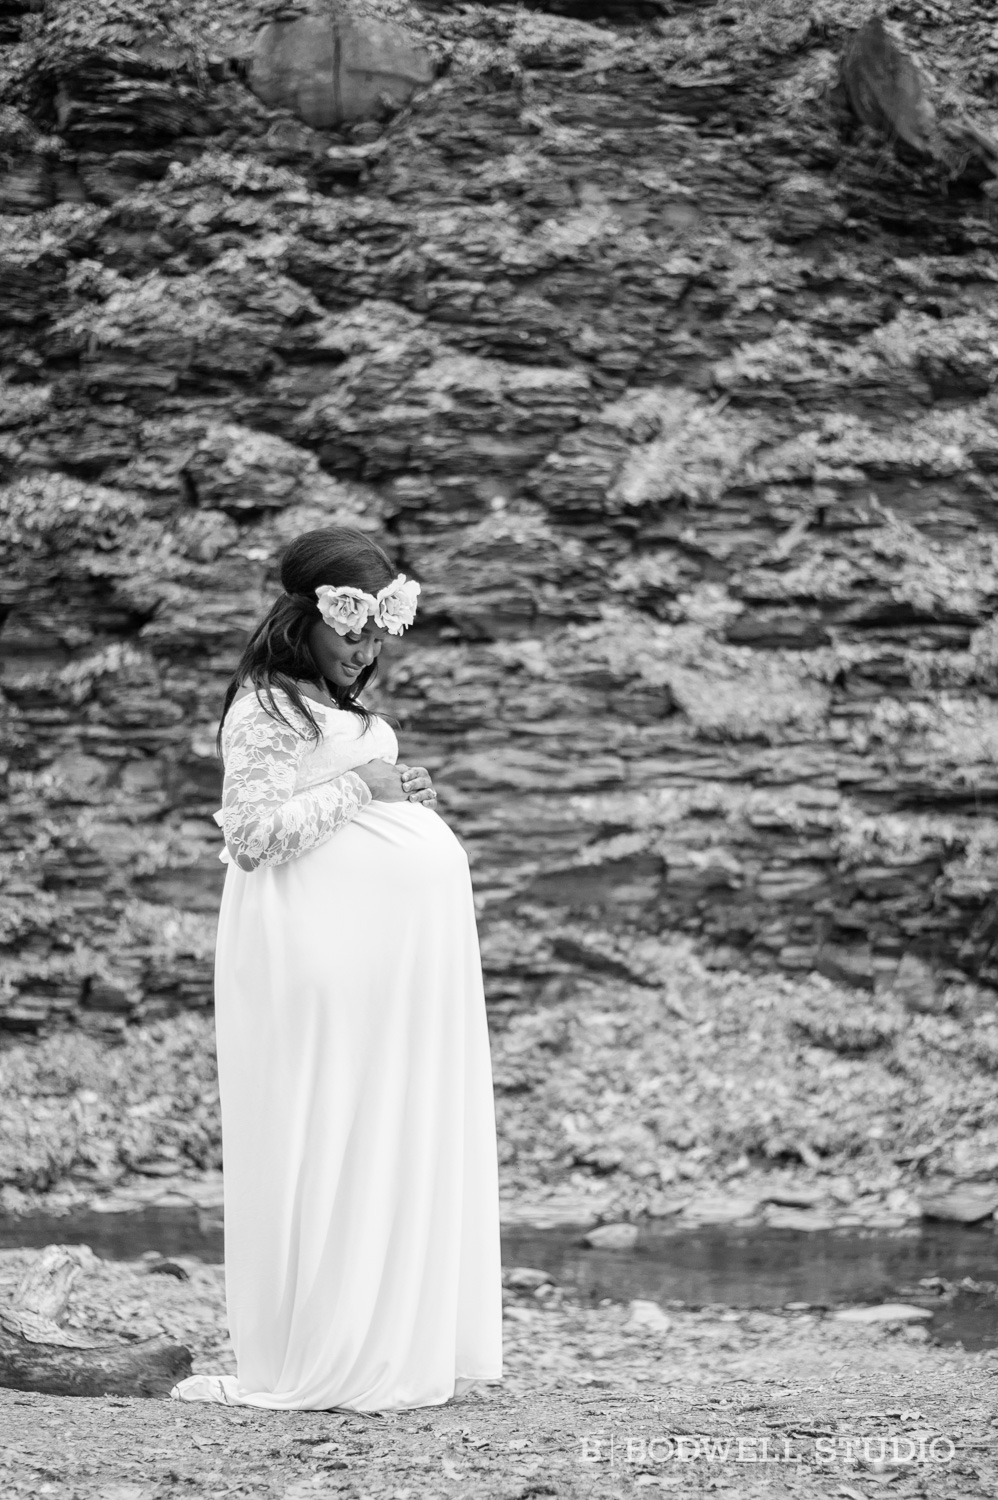 Odigwe_Maternity_Blog_008.jpg